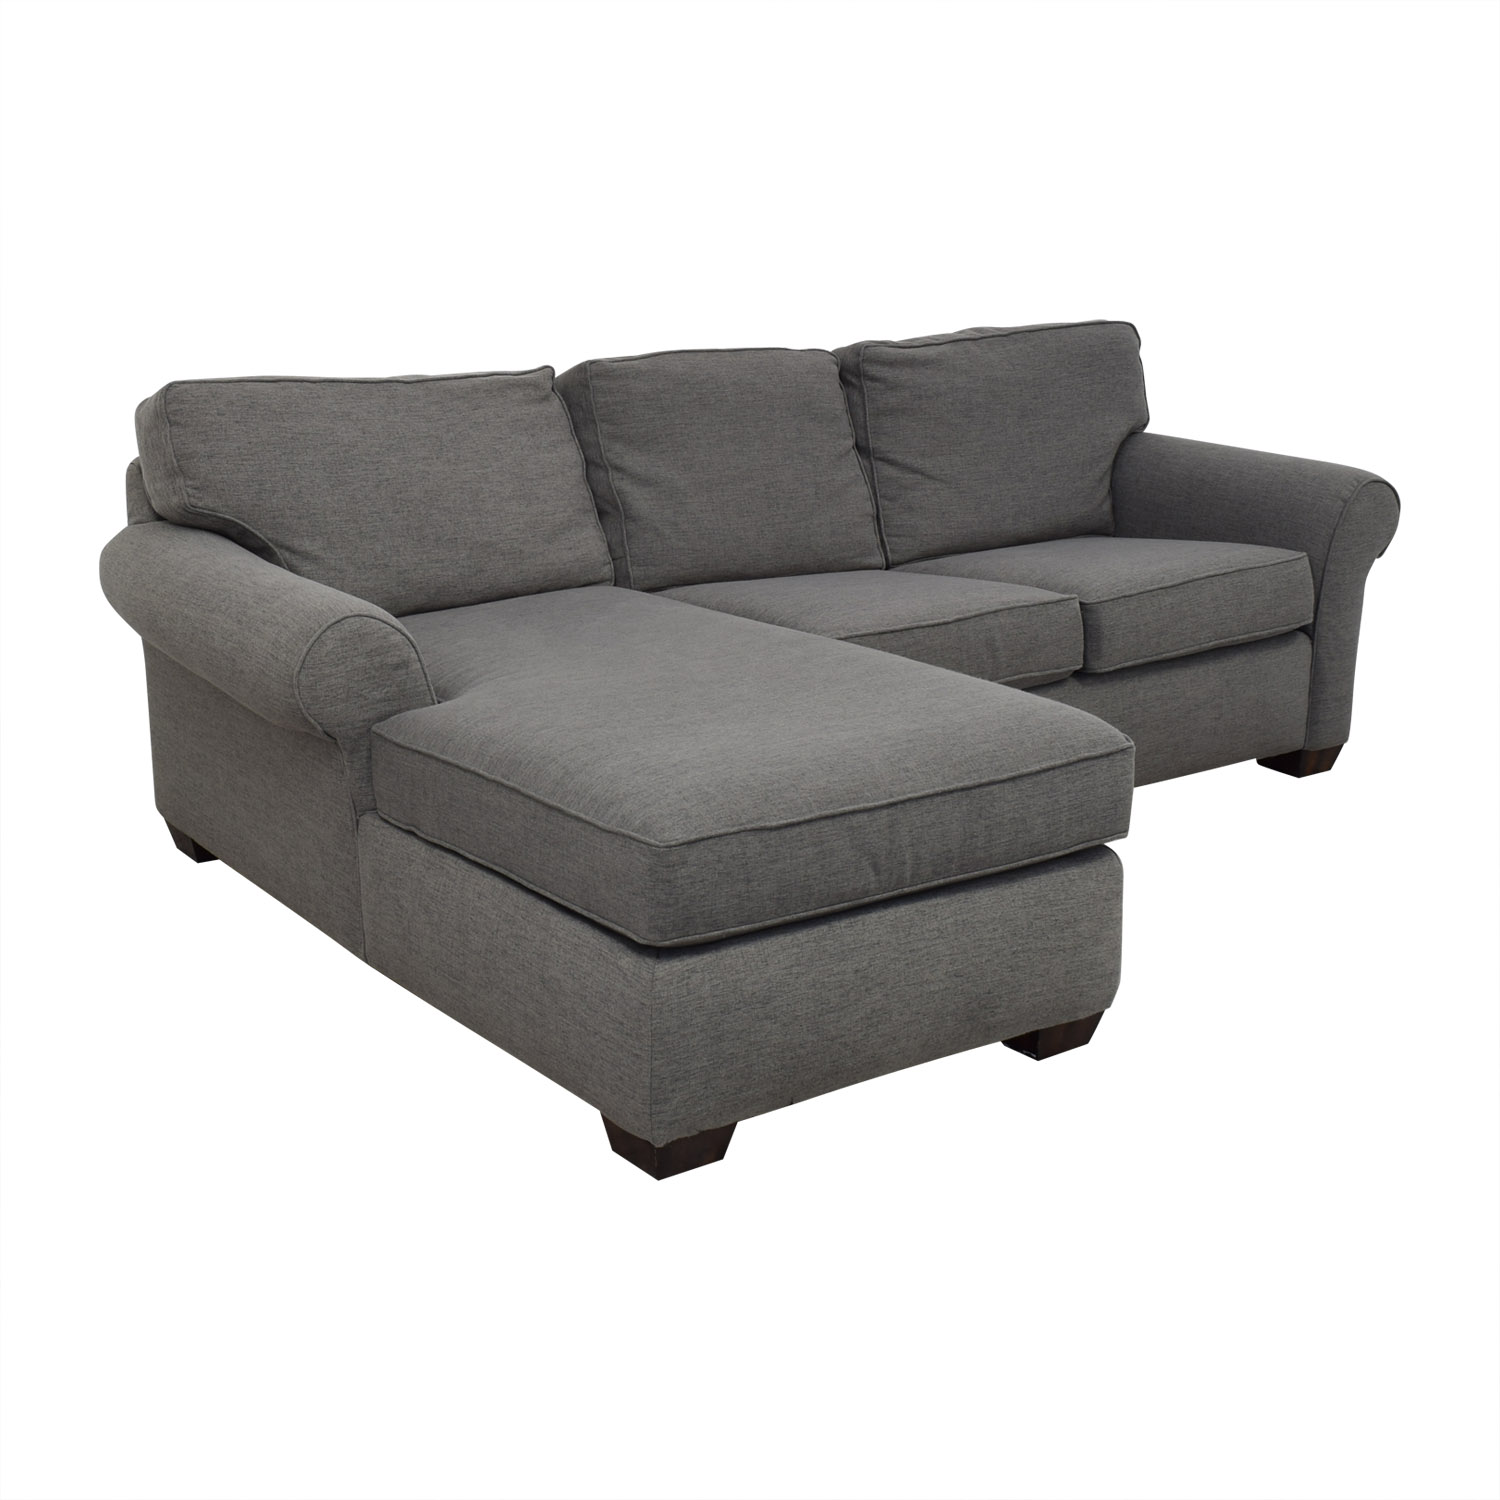 Flexsteel Grey Sectional Sofa with Chaise Flexsteel